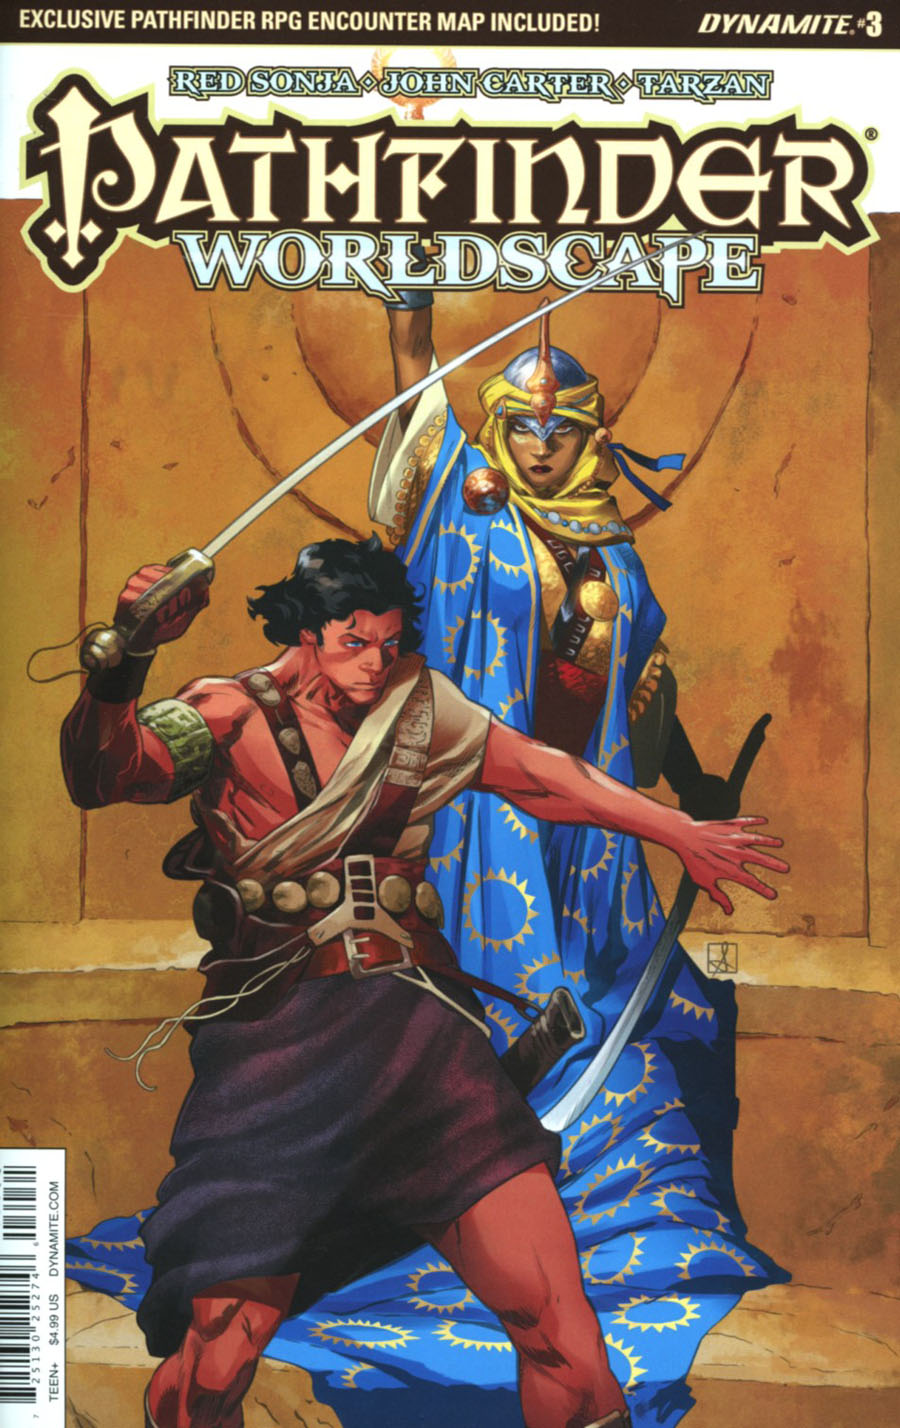 Pathfinder Worldscape #3 Cover C Variant Sean Izaakse Subscription Cover